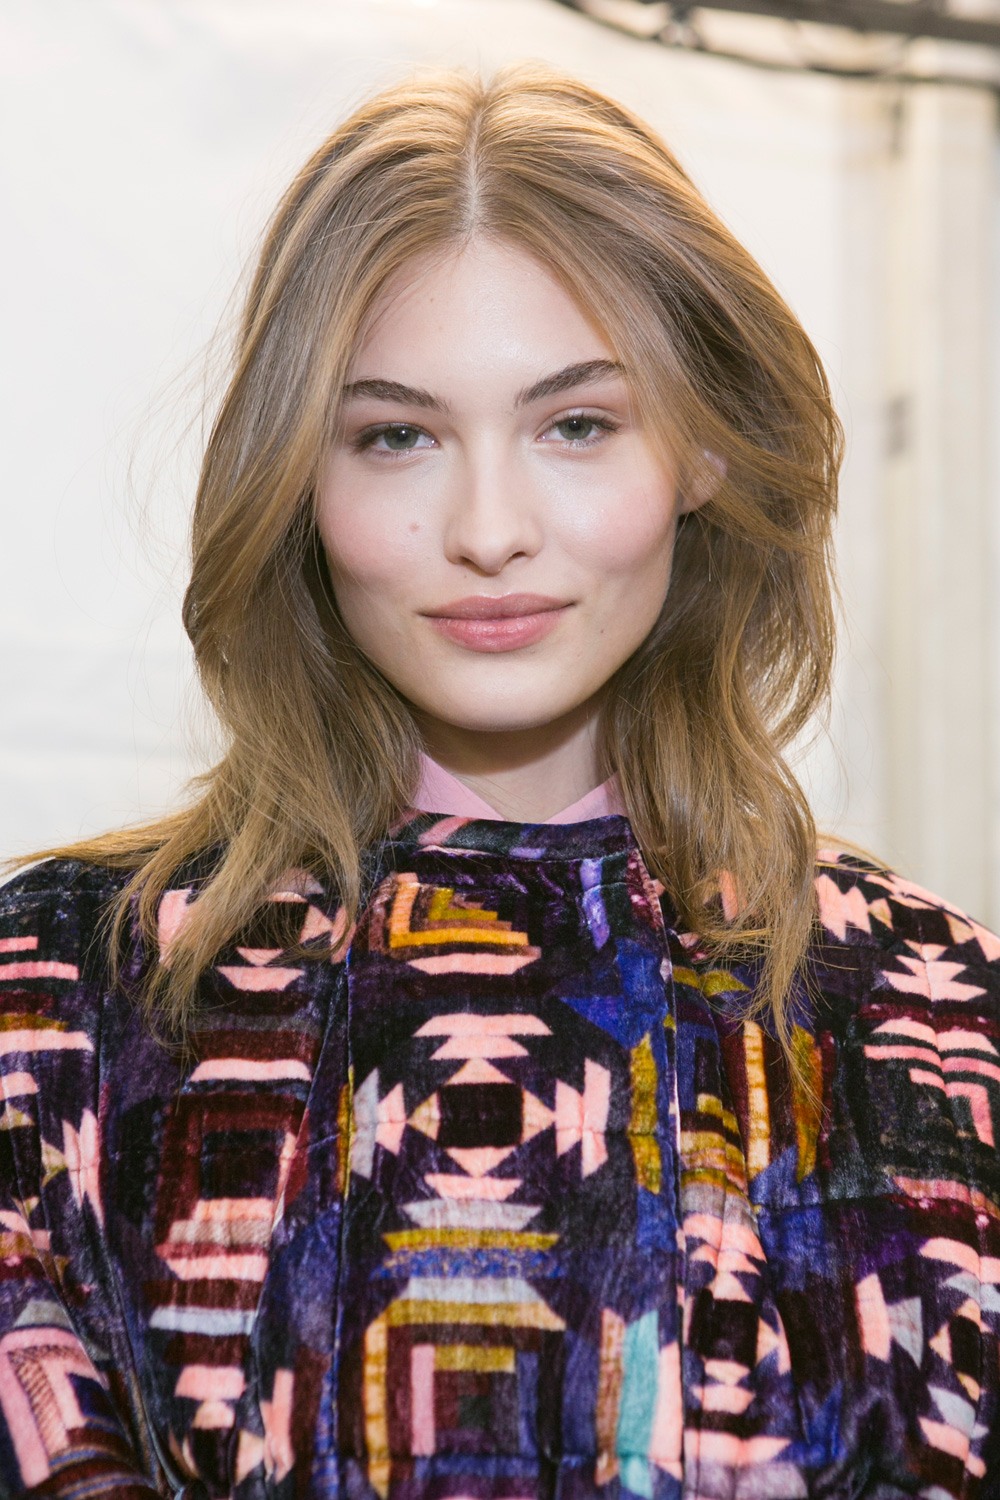 ISABEL MARANT middle part hairstyles 2017 autumn